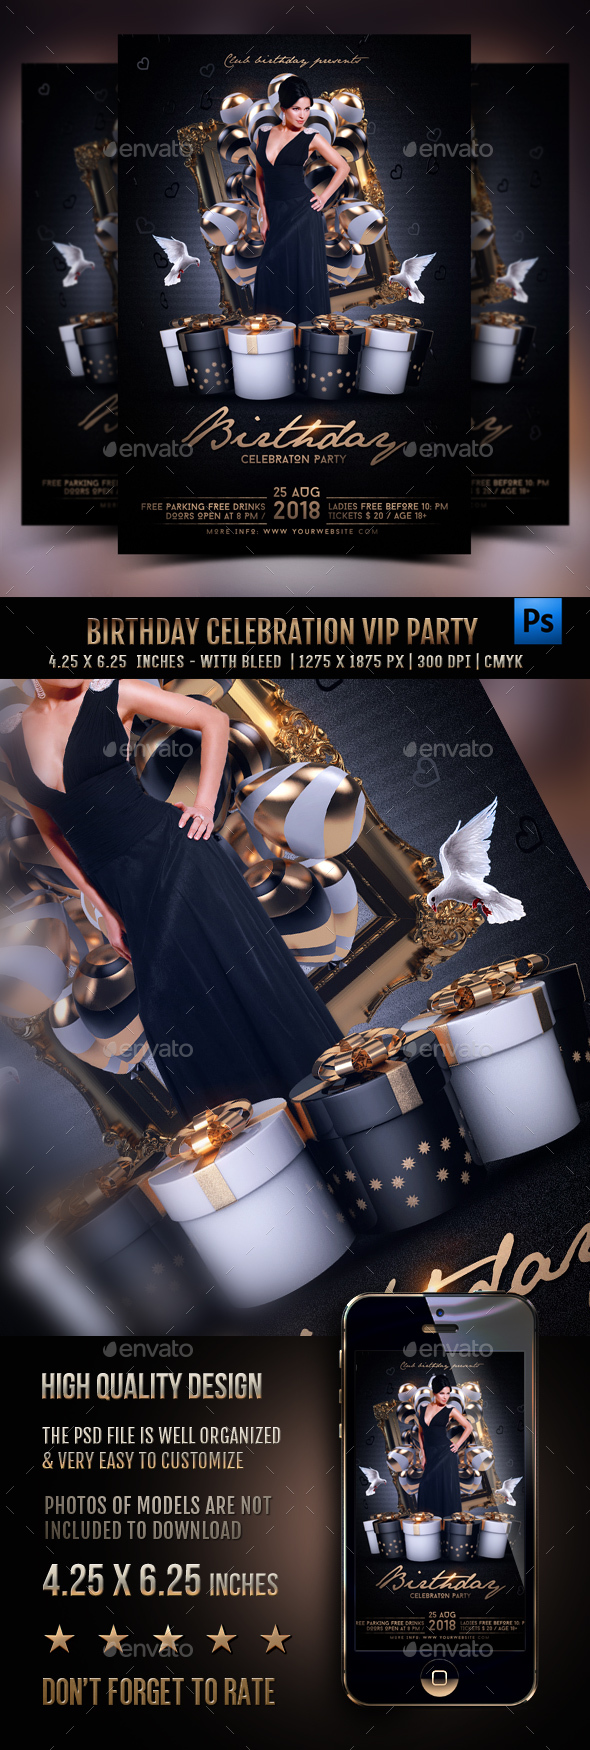 Birthday Celebration Vip Flyer - Clubs & Parties Events